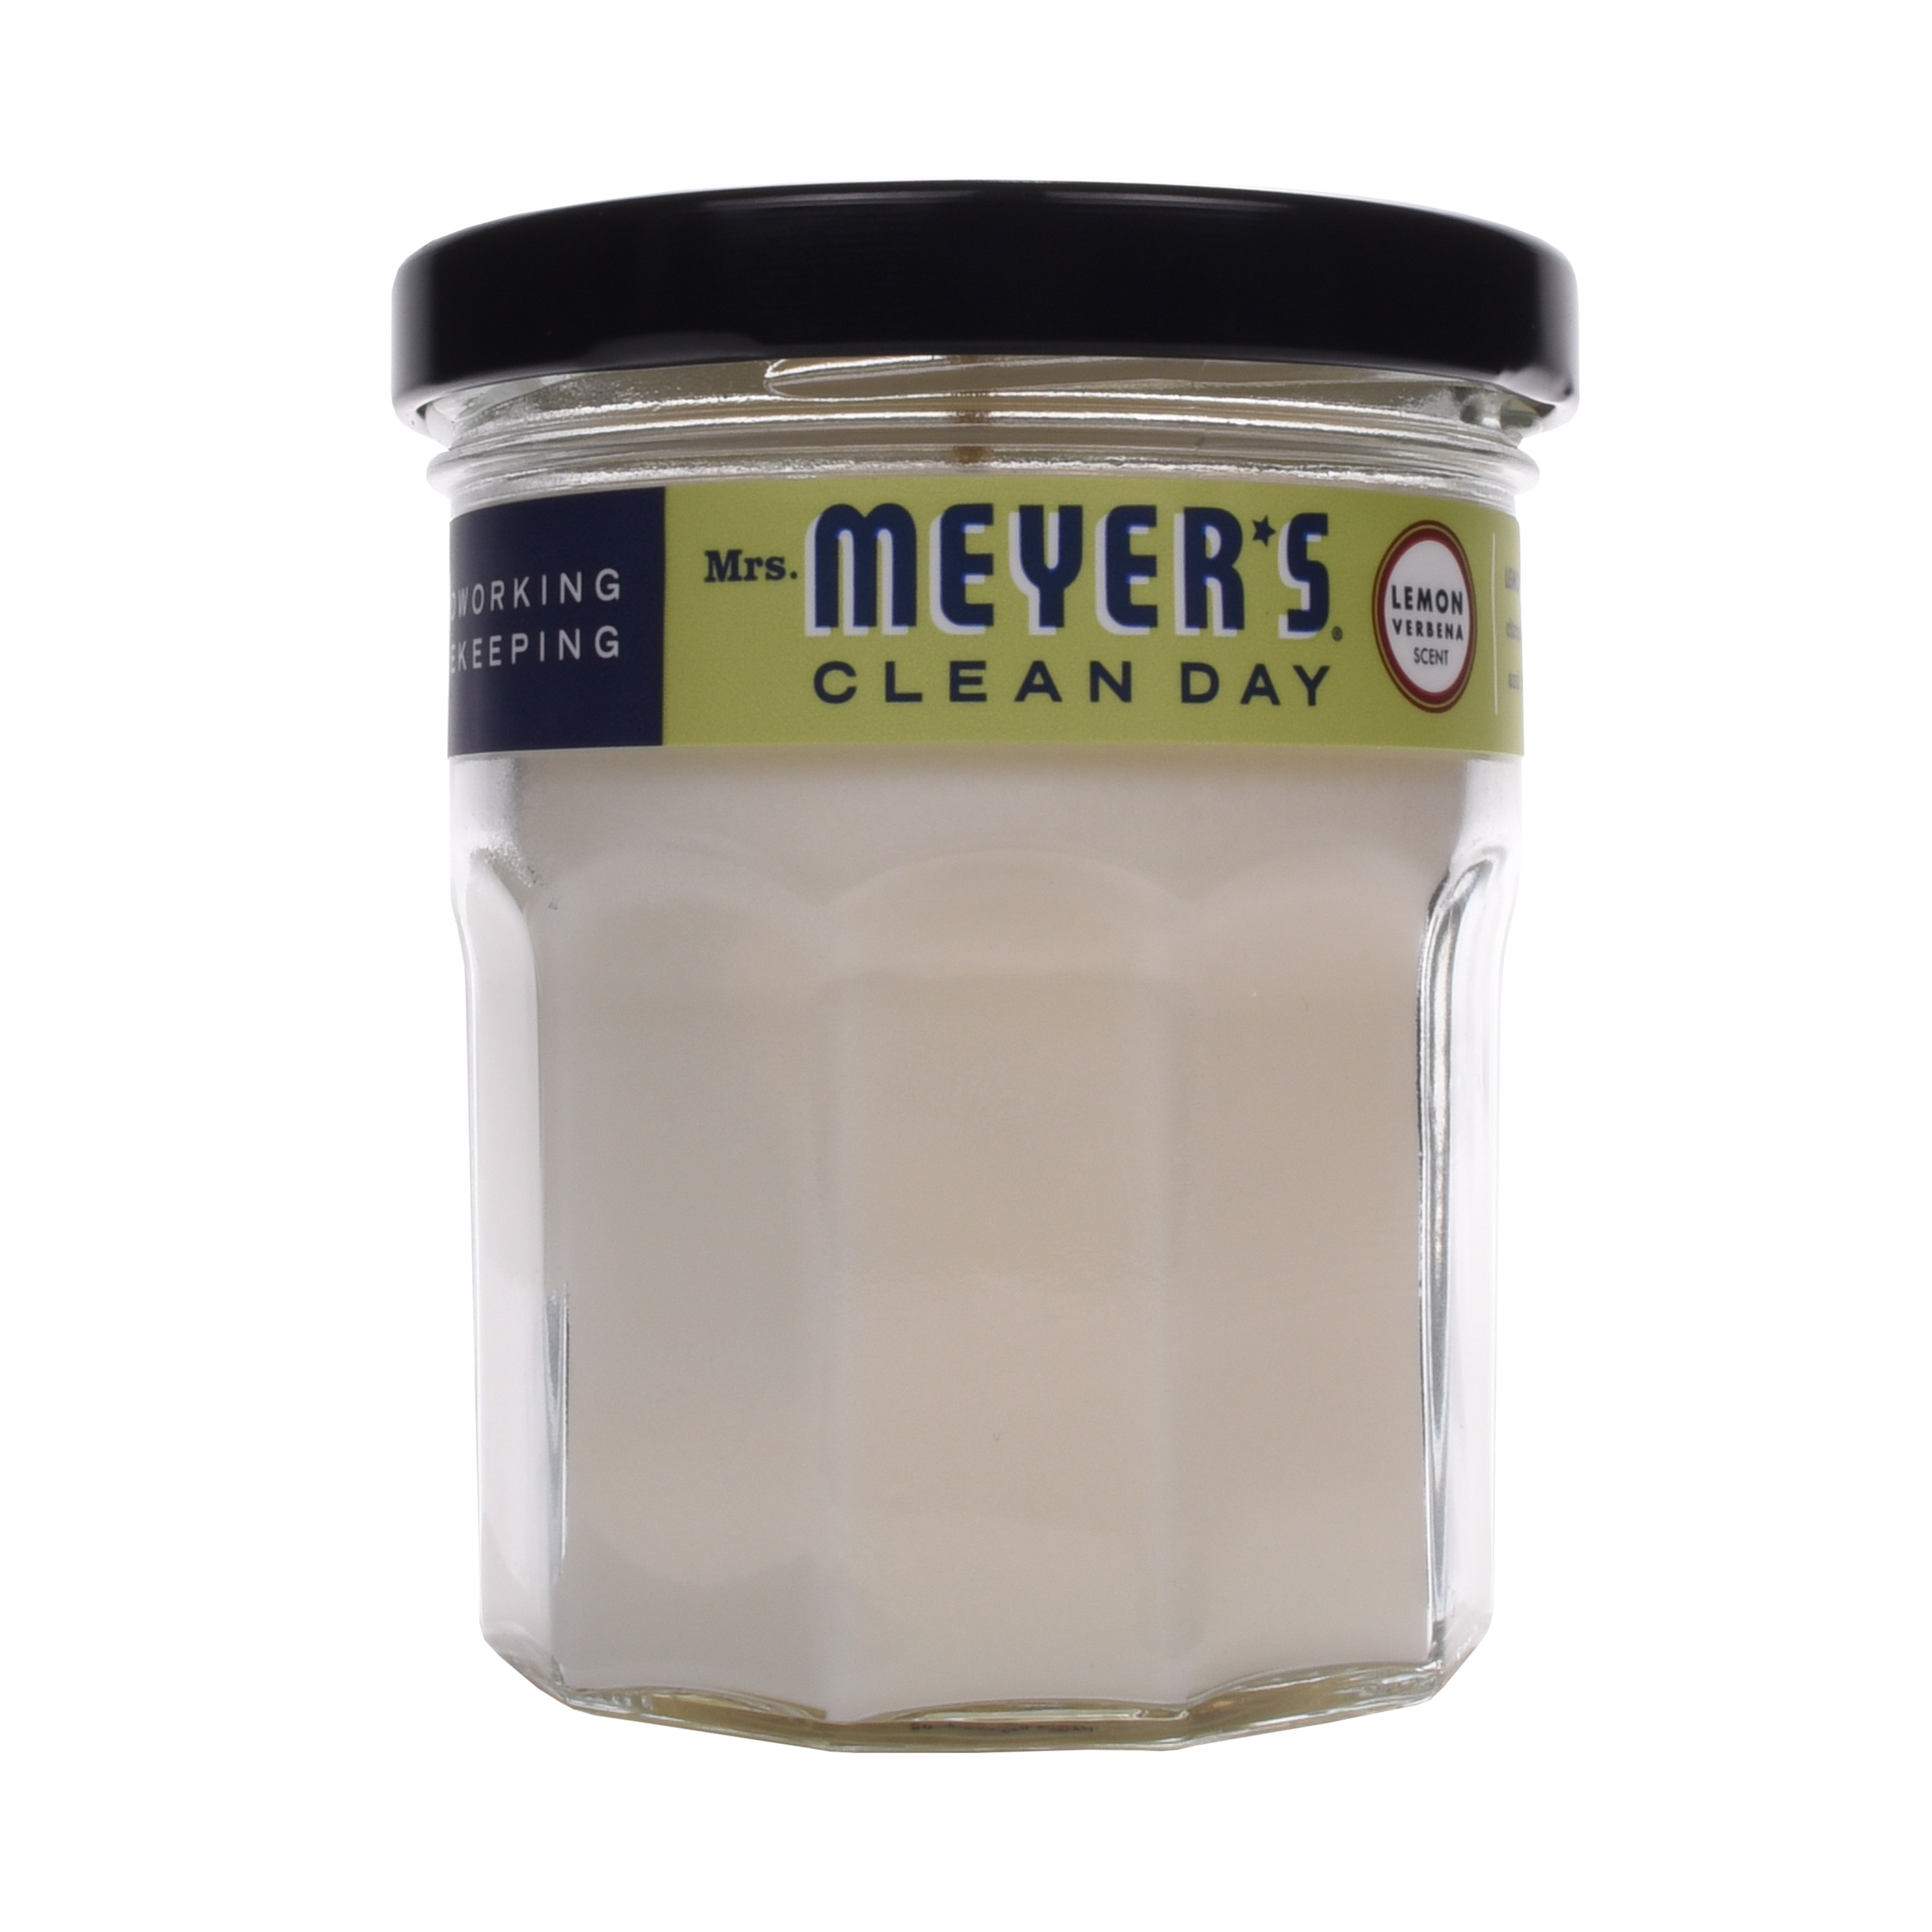 Mrs. Meyer's Clean Day Scented Soy Candle, Lemon Verbena, 4.9 oz by SC Johnson